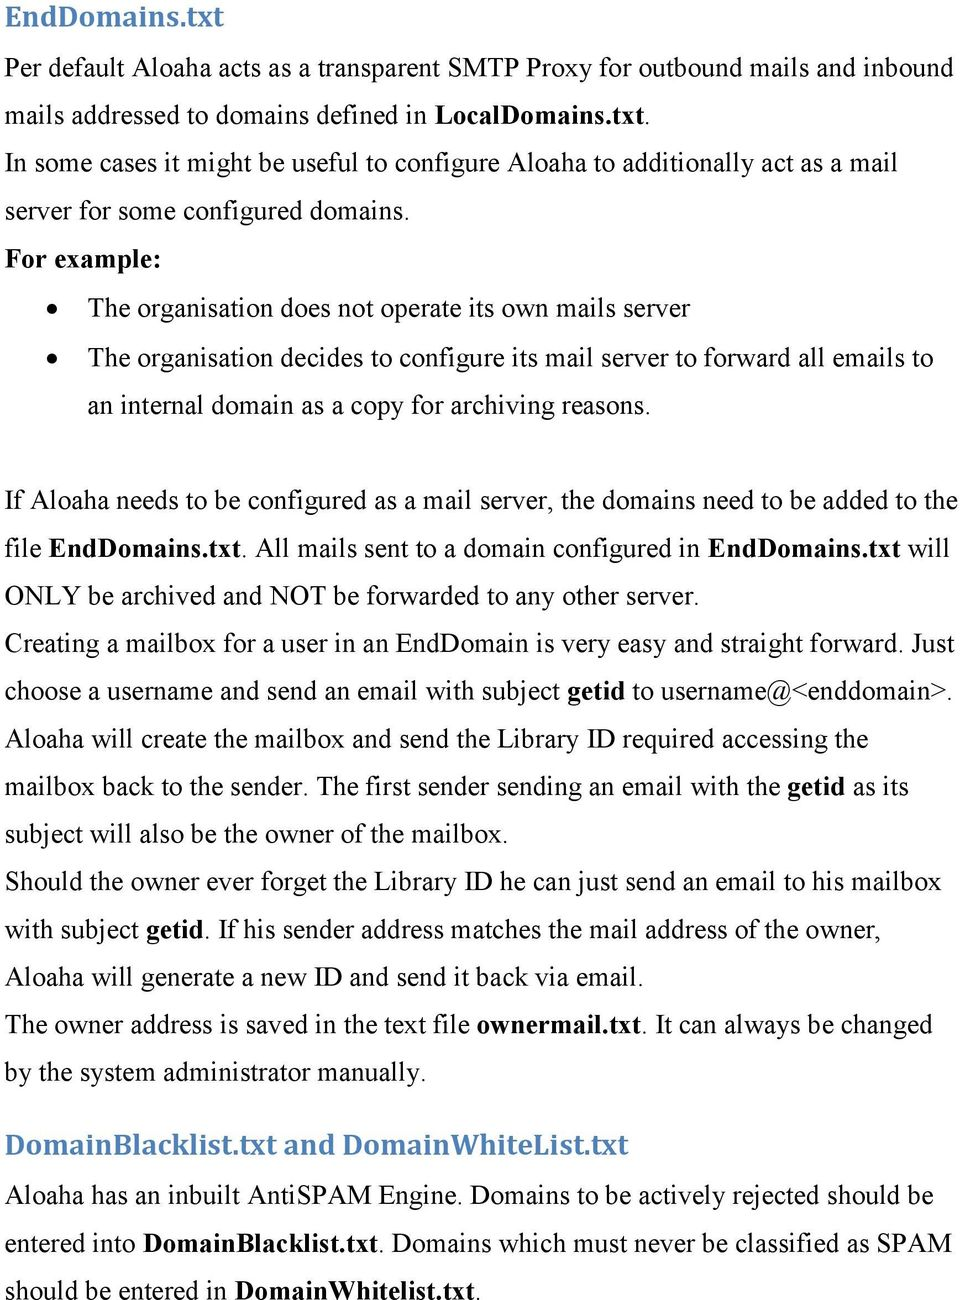 If Aloaha needs to be configured as a mail server, the domains need to be added to the file EndDomains.txt. All mails sent to a domain configured in EndDomains.